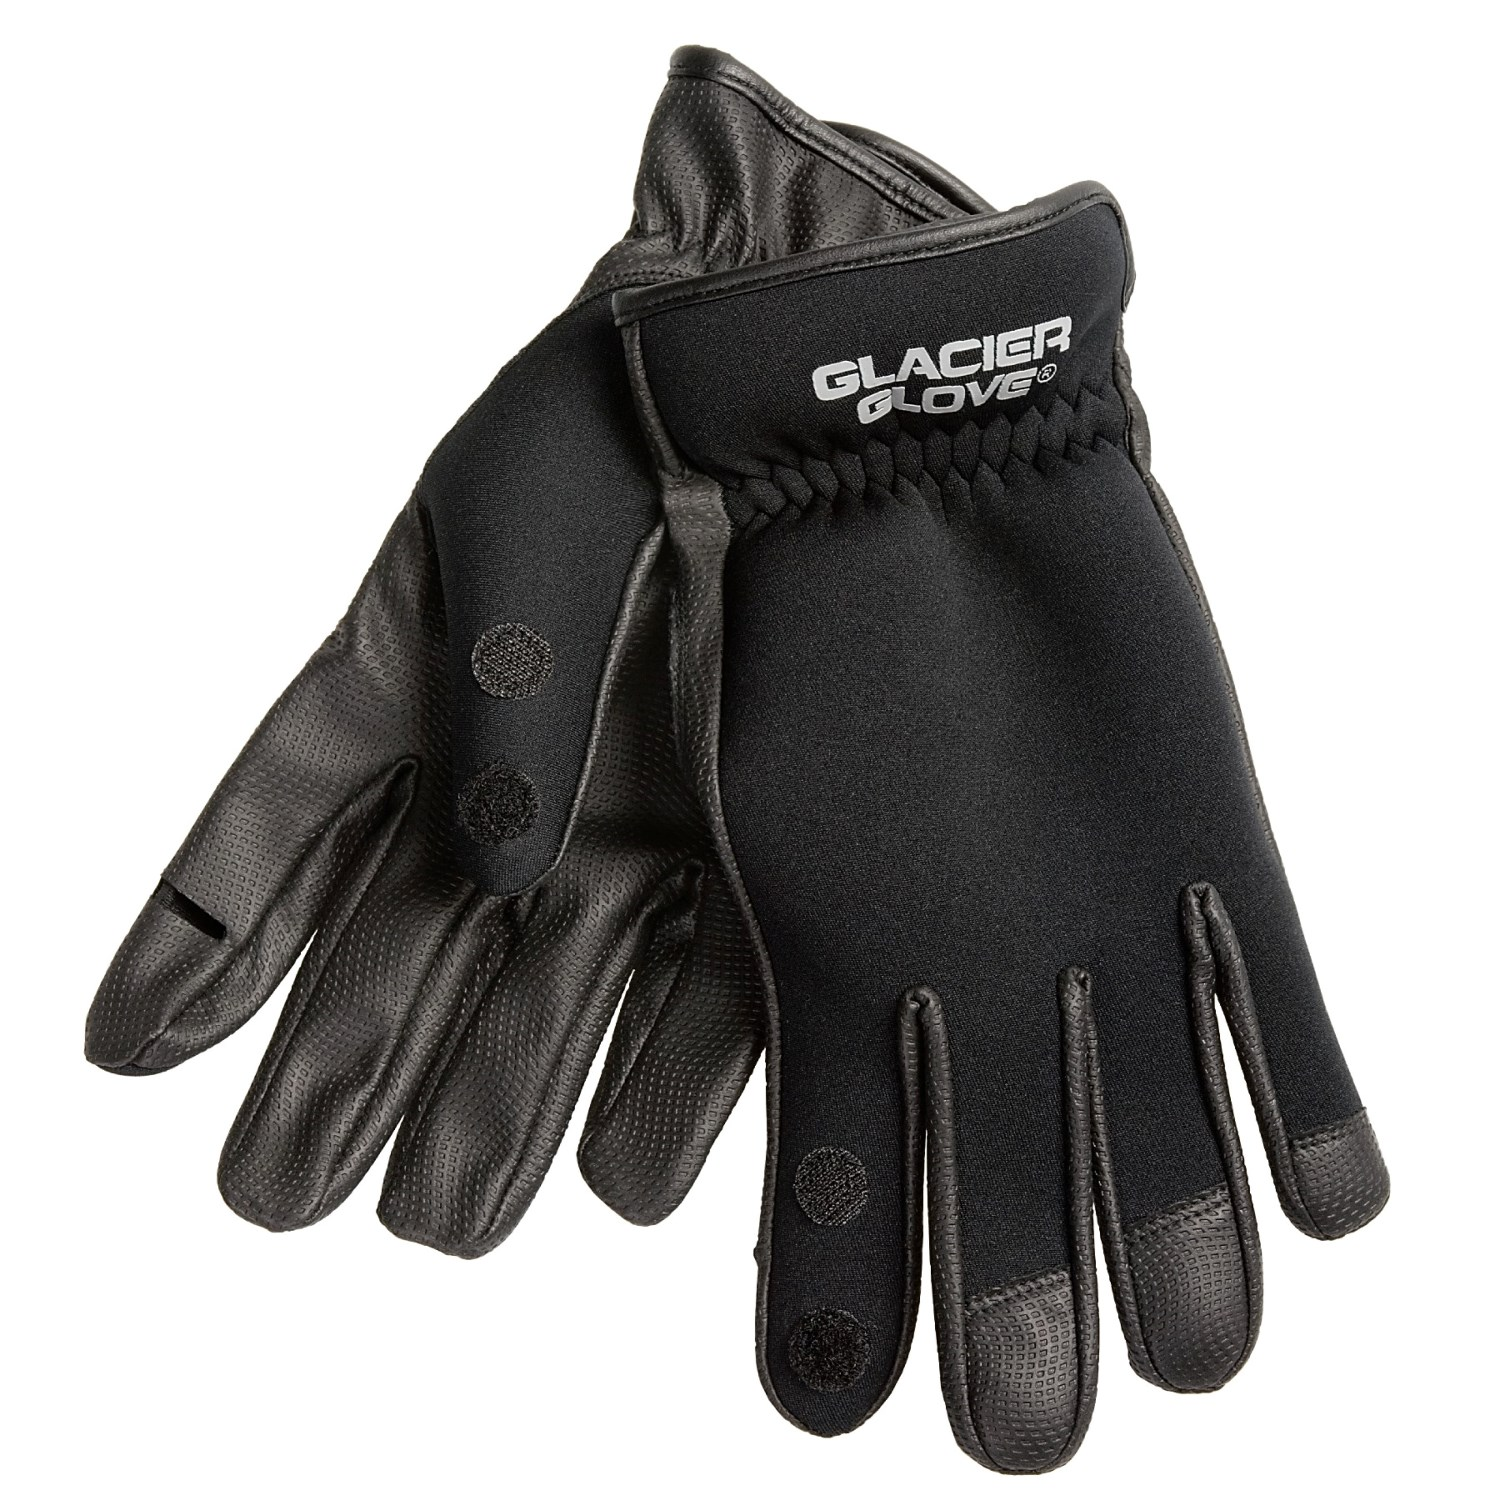 Winter gloves to combat the cold residential window for Fish cleaning gloves